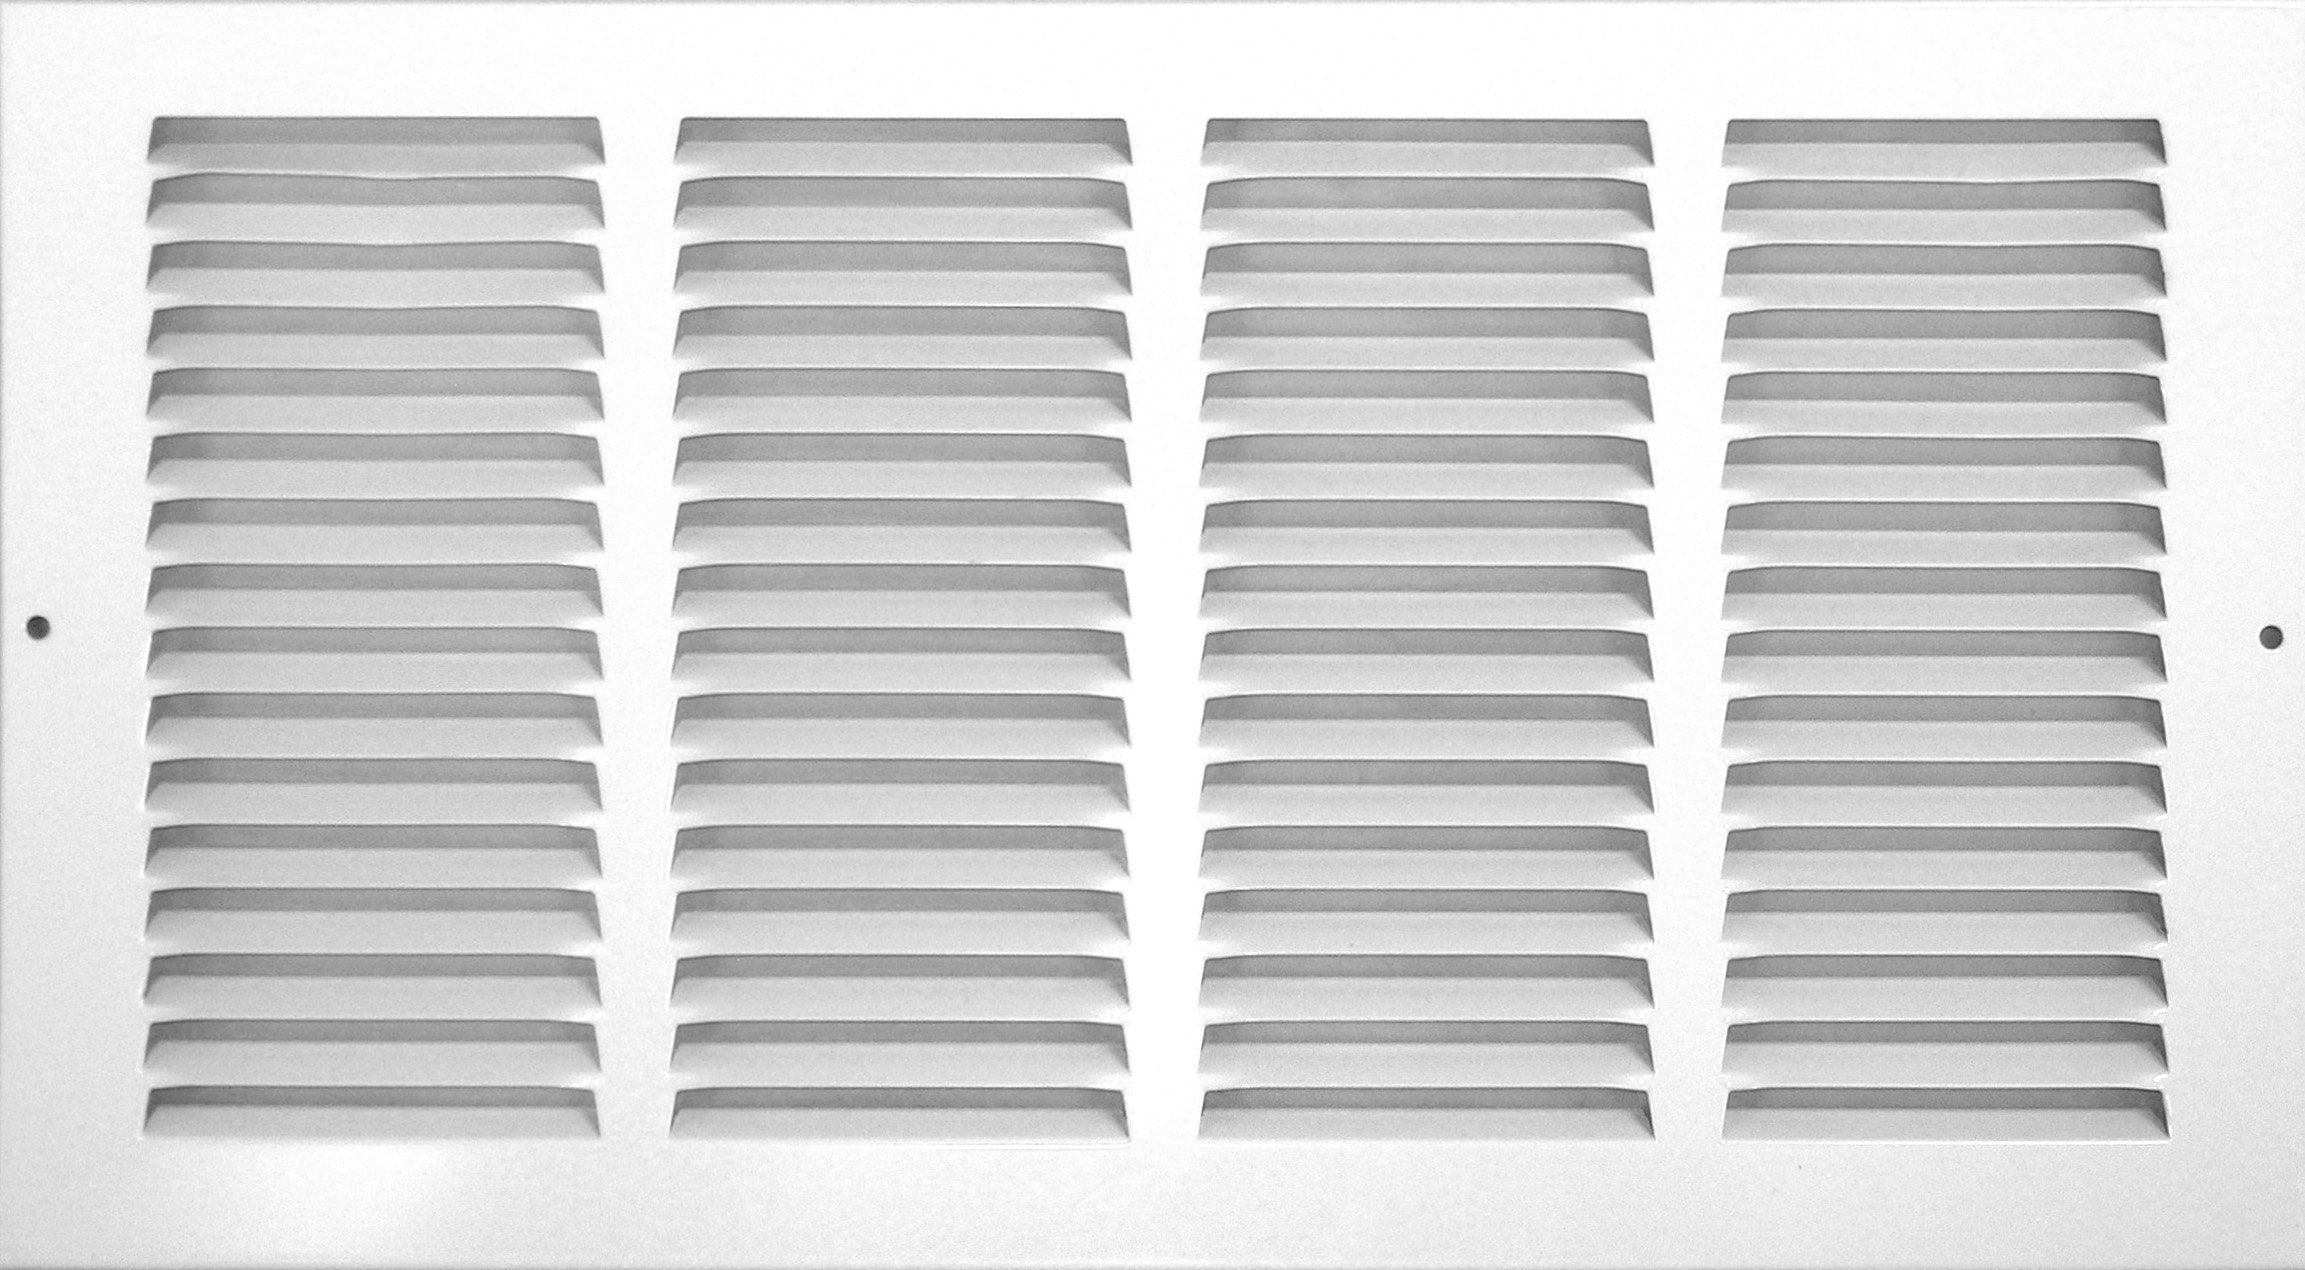 Accord ABRGWH2514 Return Grille with 1/2-Inch Fin Louvered, 25-Inch x 14-Inch(Duct Opening Measurements), White